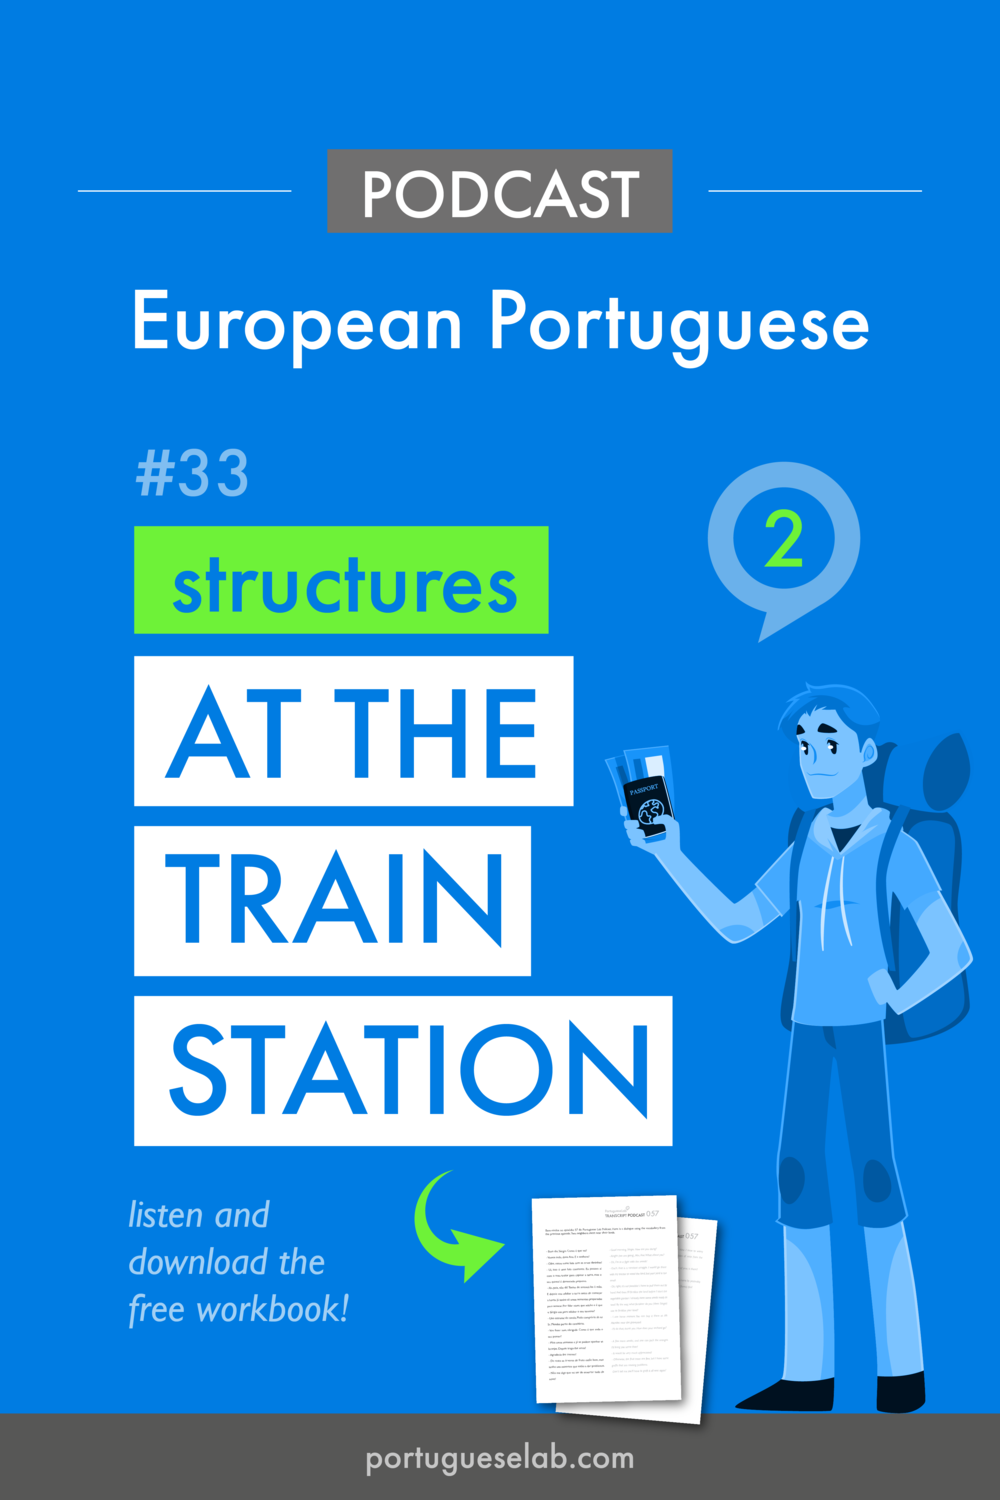 Portuguese Lab Podcast - European Portuguese - 33 - At the train station - structures.png